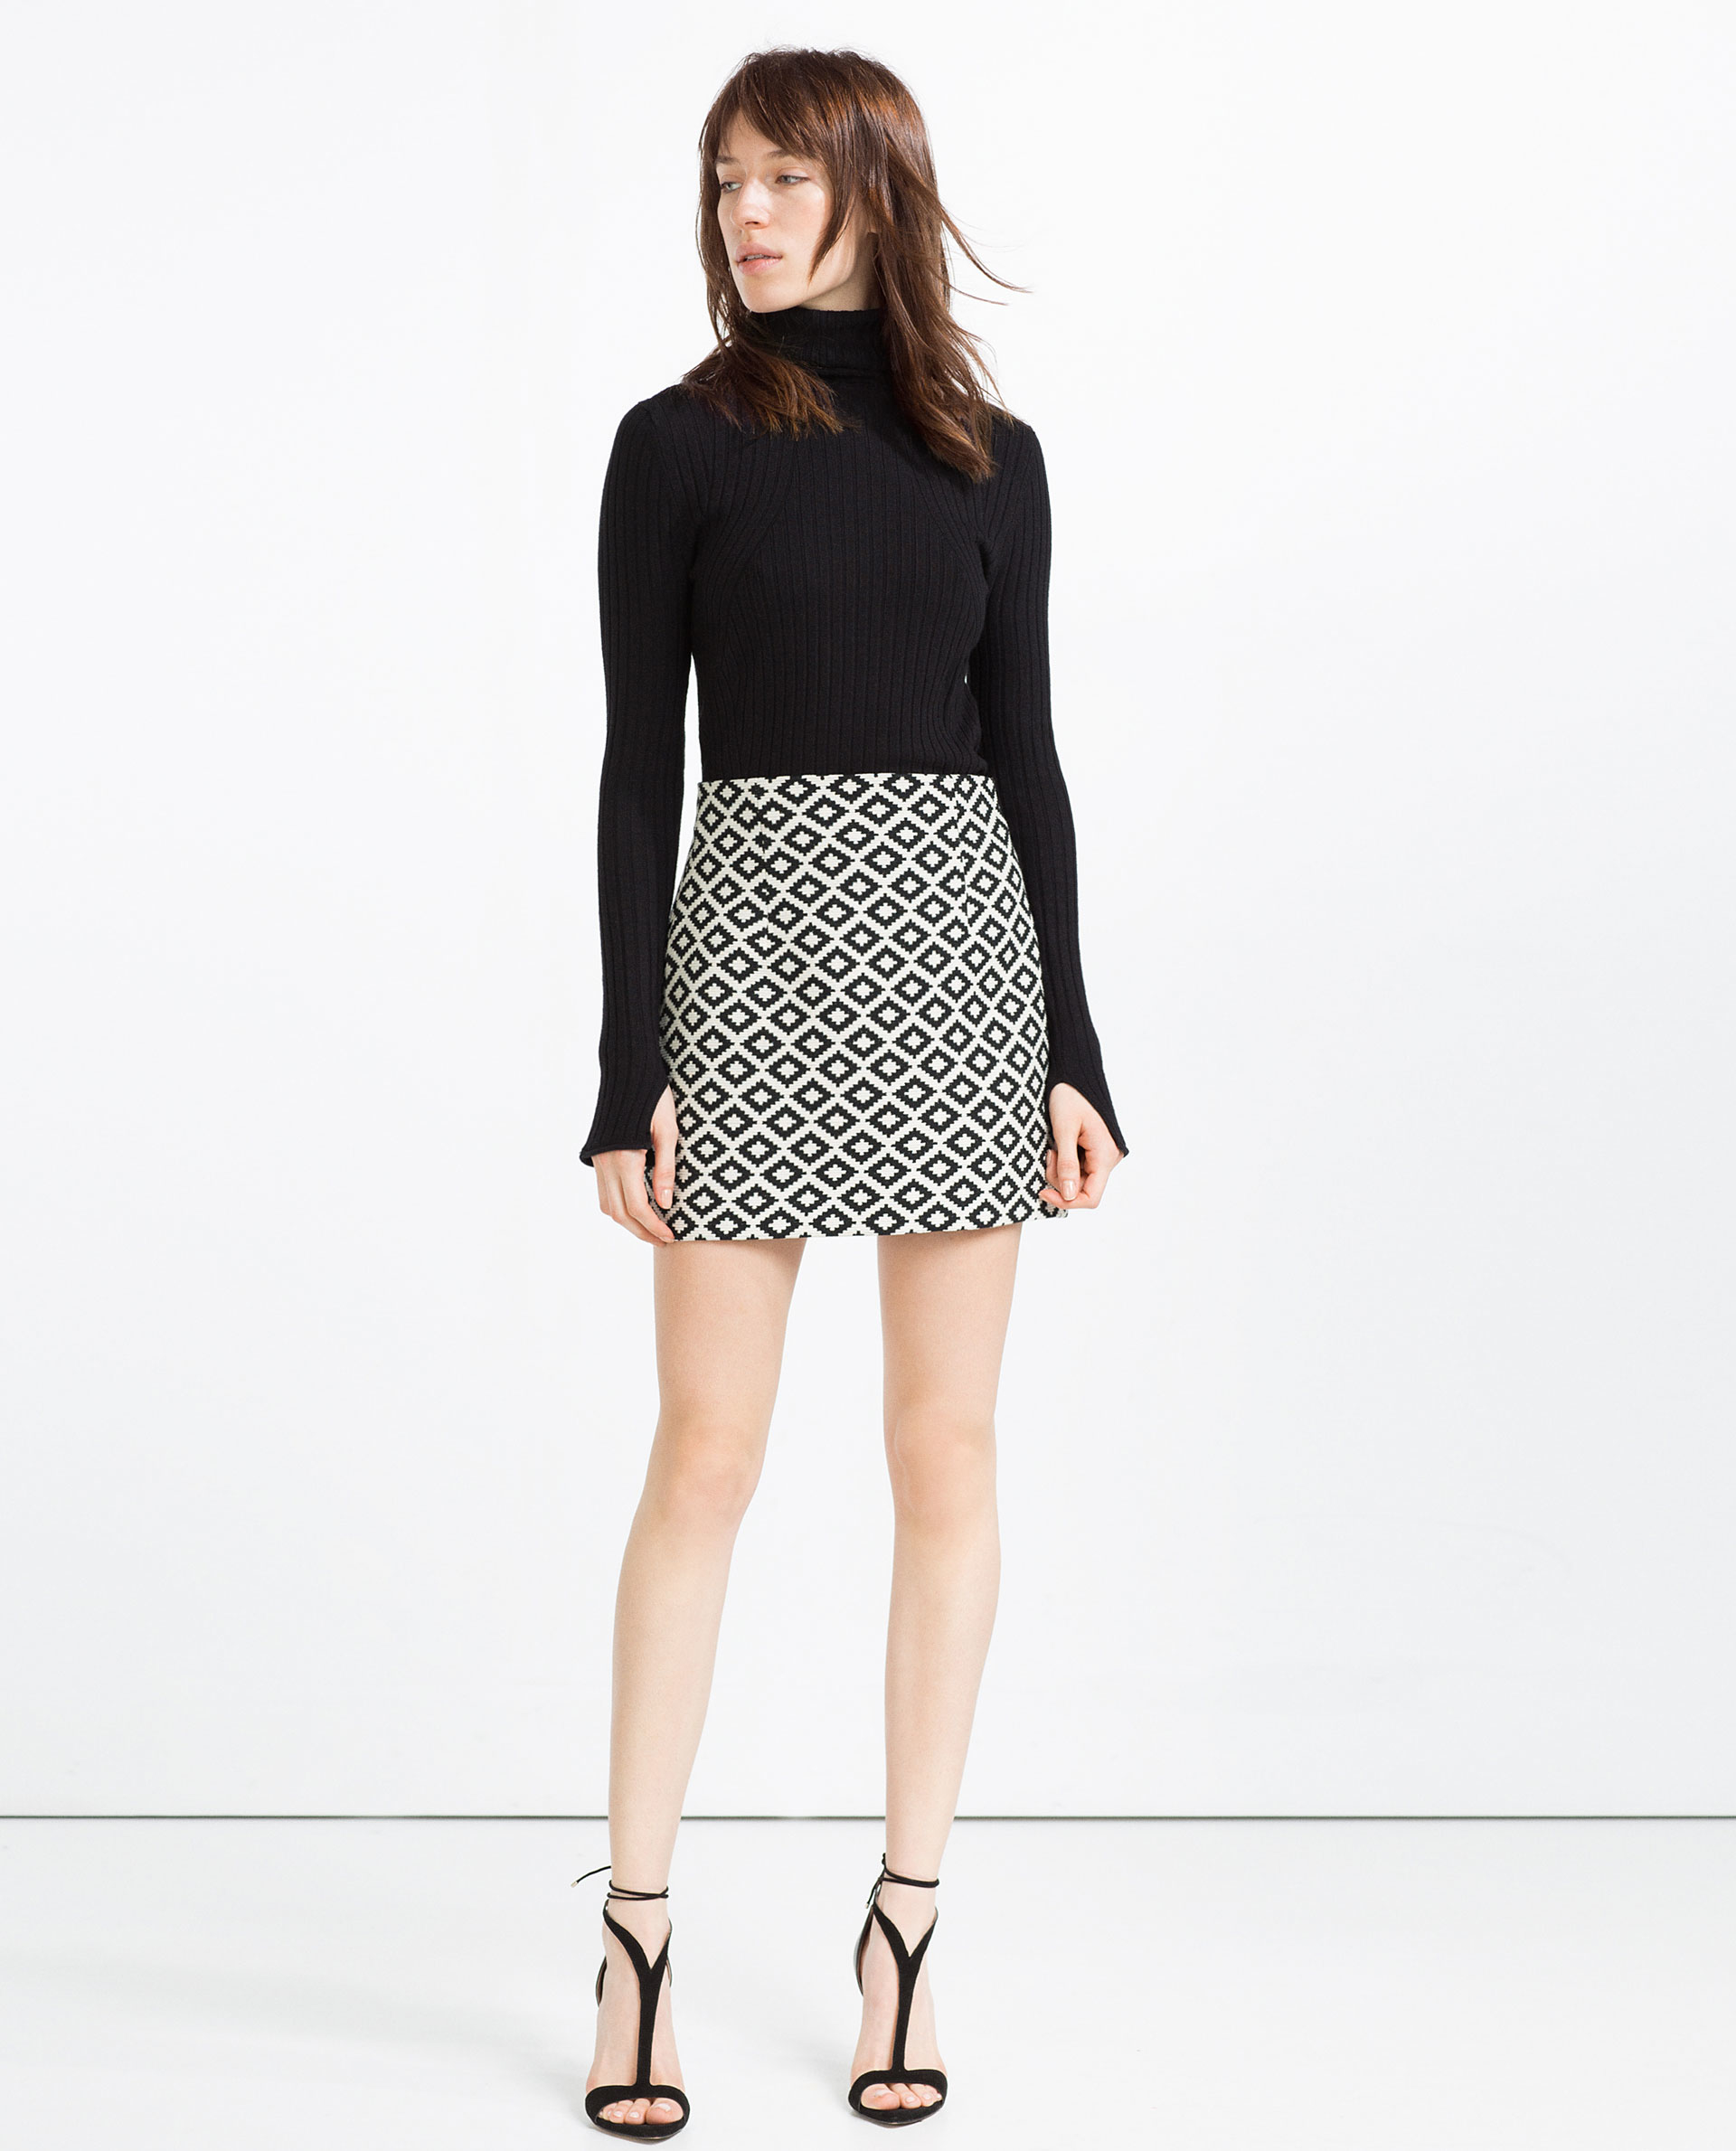 Mini skirt zara – Fashionable skirts 2017 photo blog